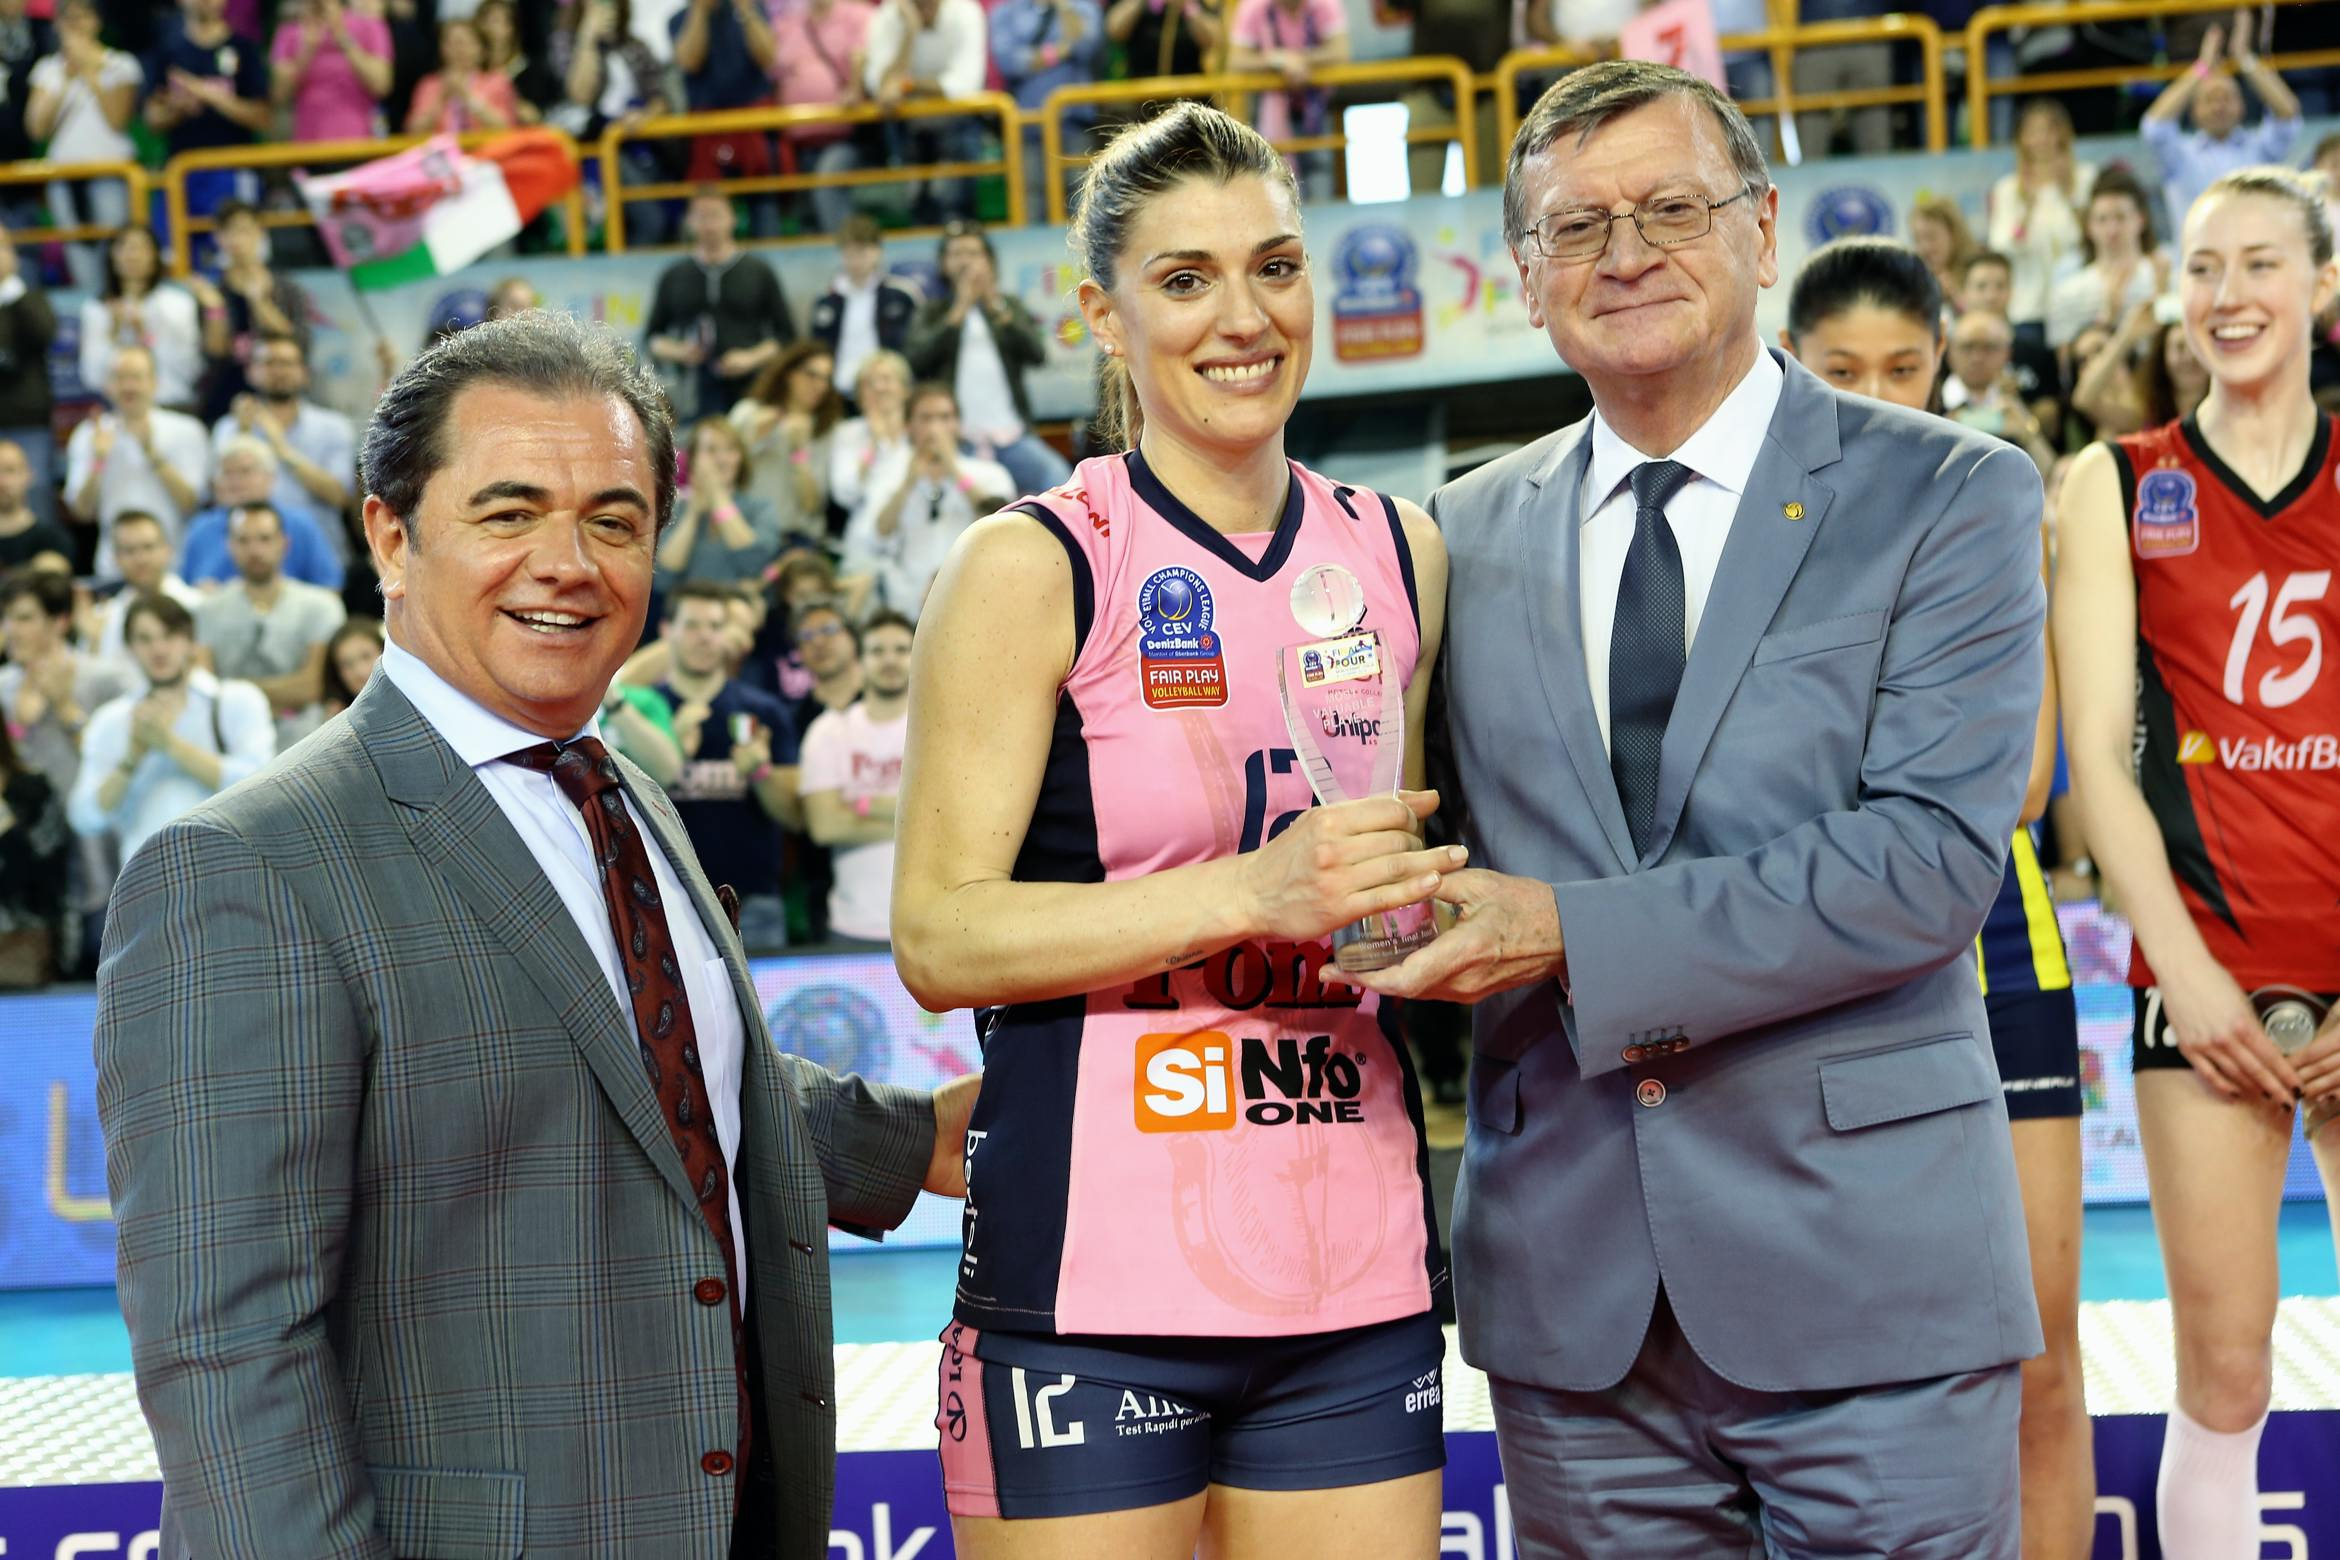 francesca-piccinini-best-volleyball-player-3.jpg